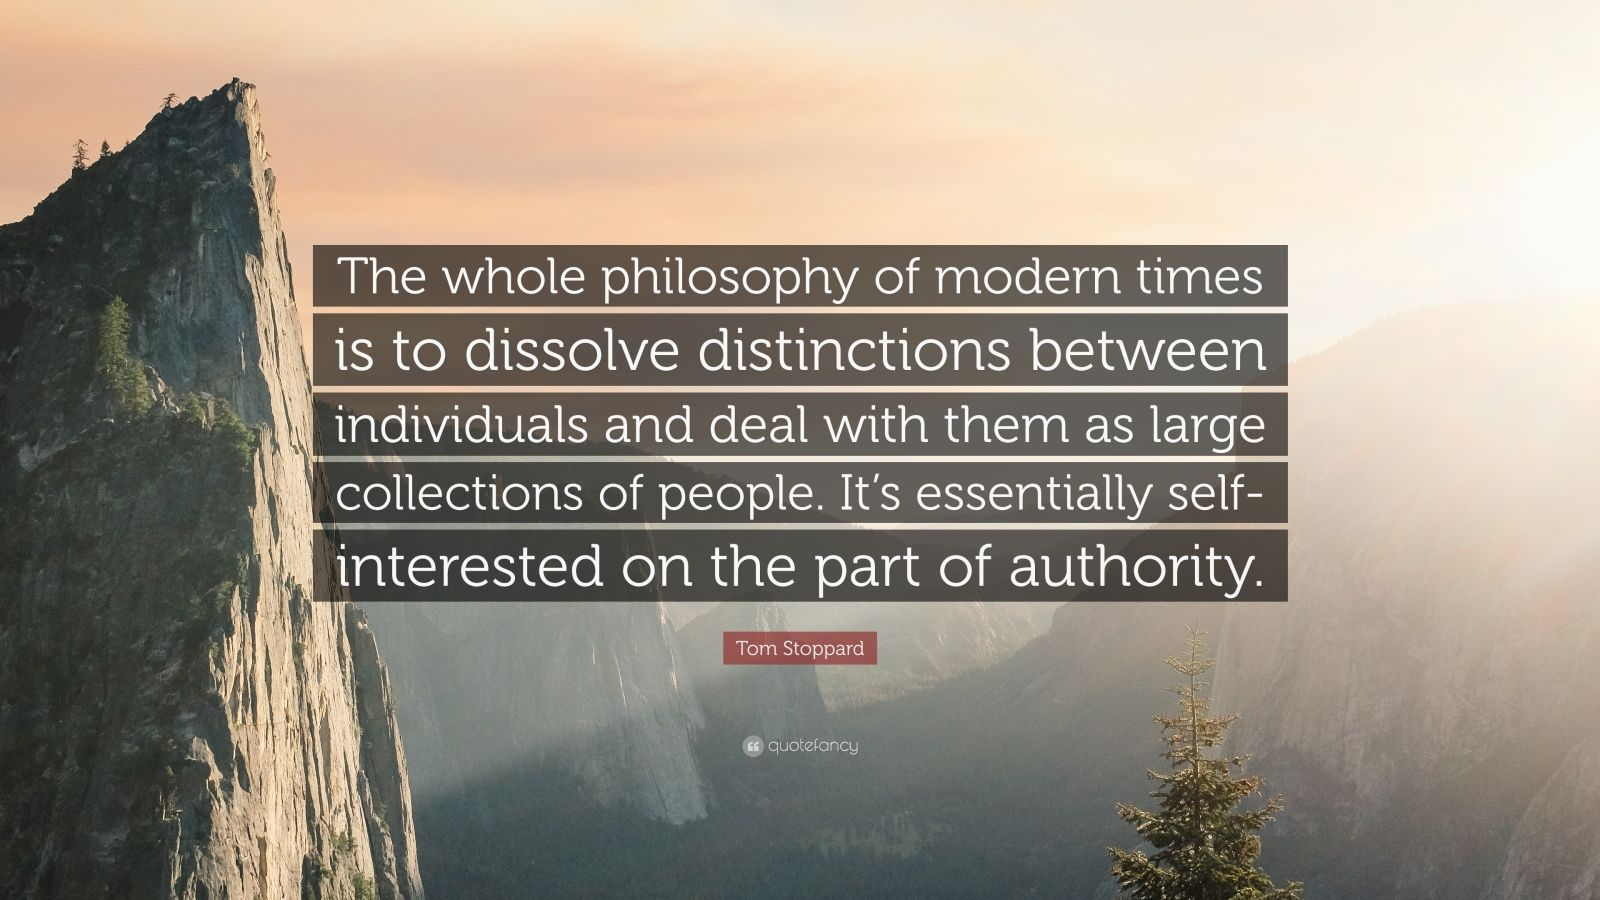 """Tom Stoppard Quote: """"The whole philosophy of modern times is to dissolve distinctions between individuals and deal with them as large collections of people. It's essentially self-interested on the part of authority."""""""